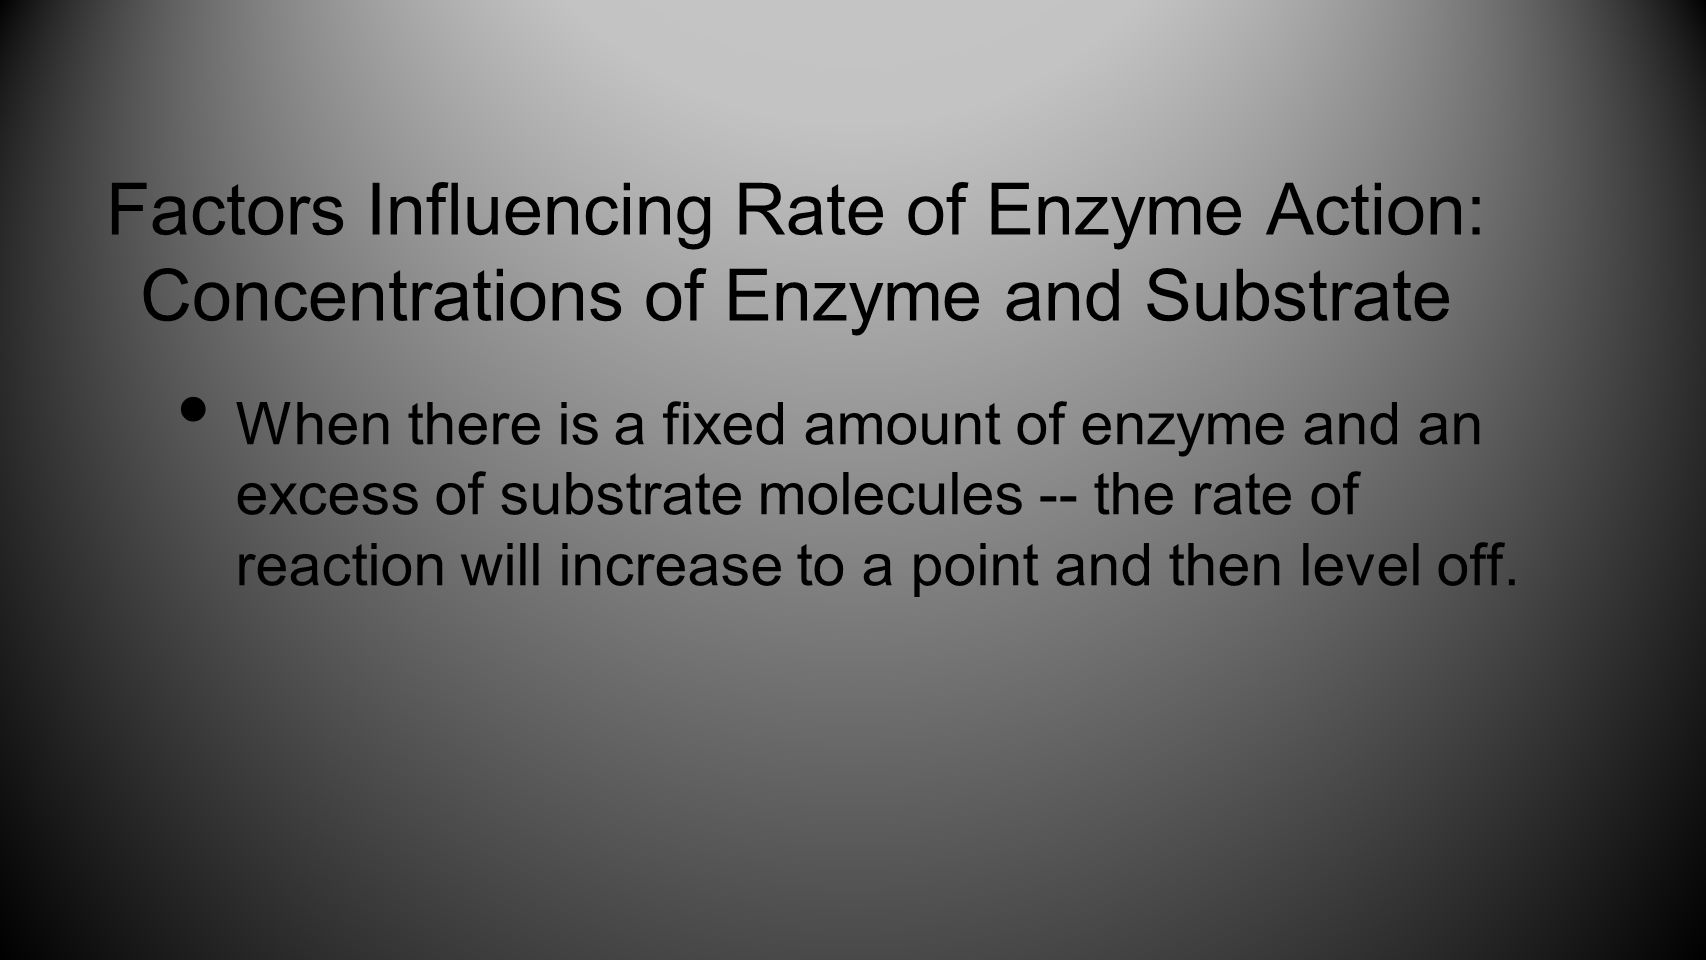 Factors Influencing Rate of Enzyme Action: Concentrations of Enzyme and Substrate